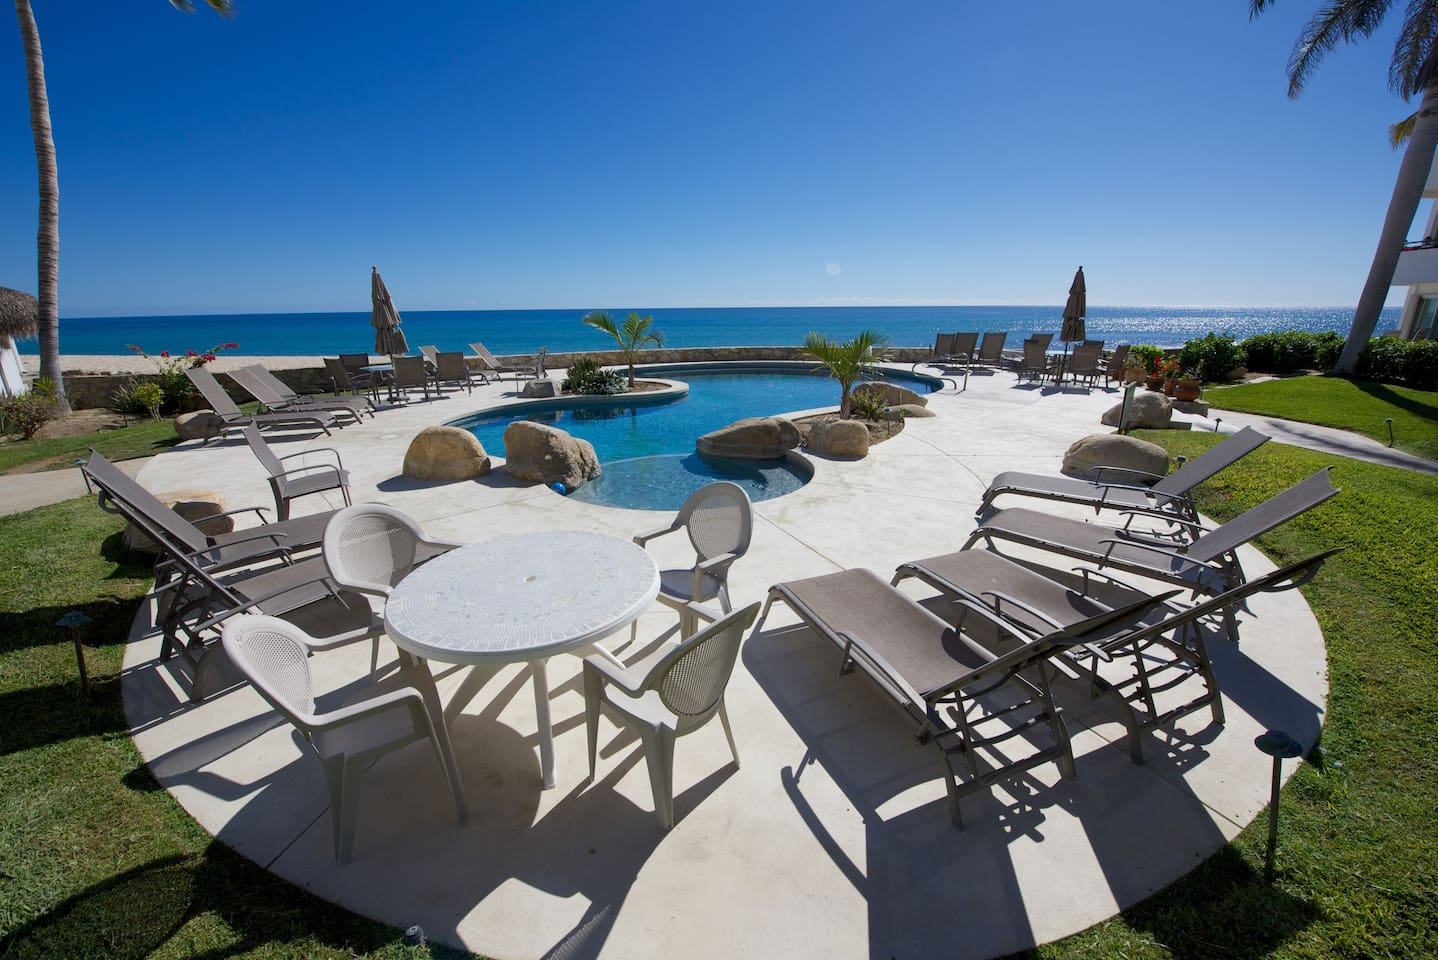 Mira Vista has a beachfront pool that is furnished